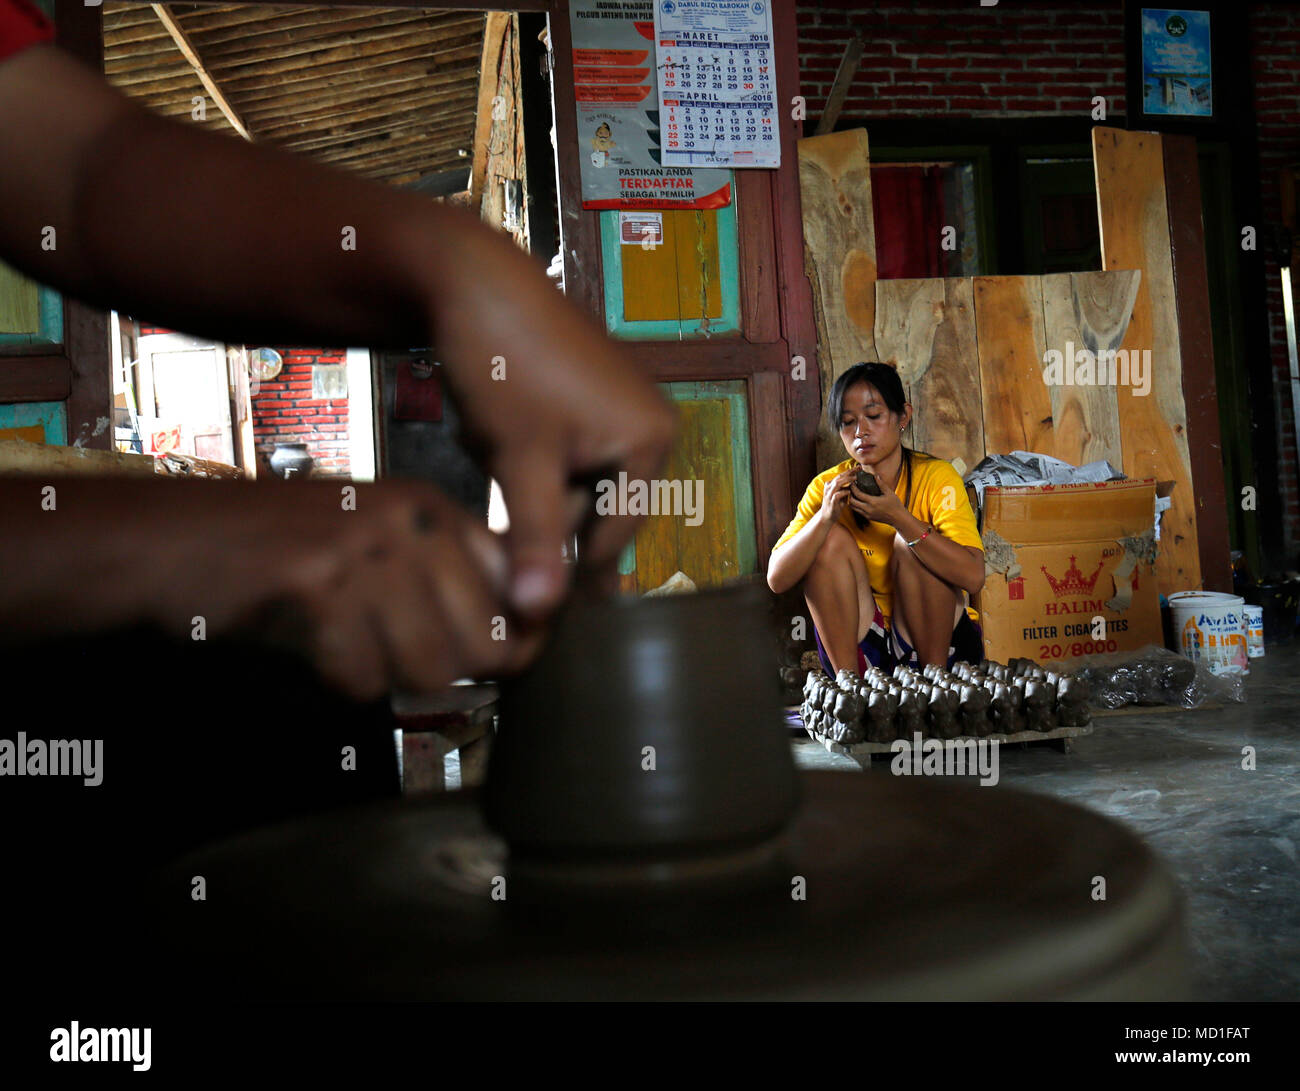 Magelang, Indonesia. 17th Apr, 2018. Women making a earthenware at home industry at Magelang, Center of Java, Indonesia. She earning around 60.000 IDR per day. Credit: Dadang Trimulyanto/Pacific Press/Alamy Live News - Stock Image